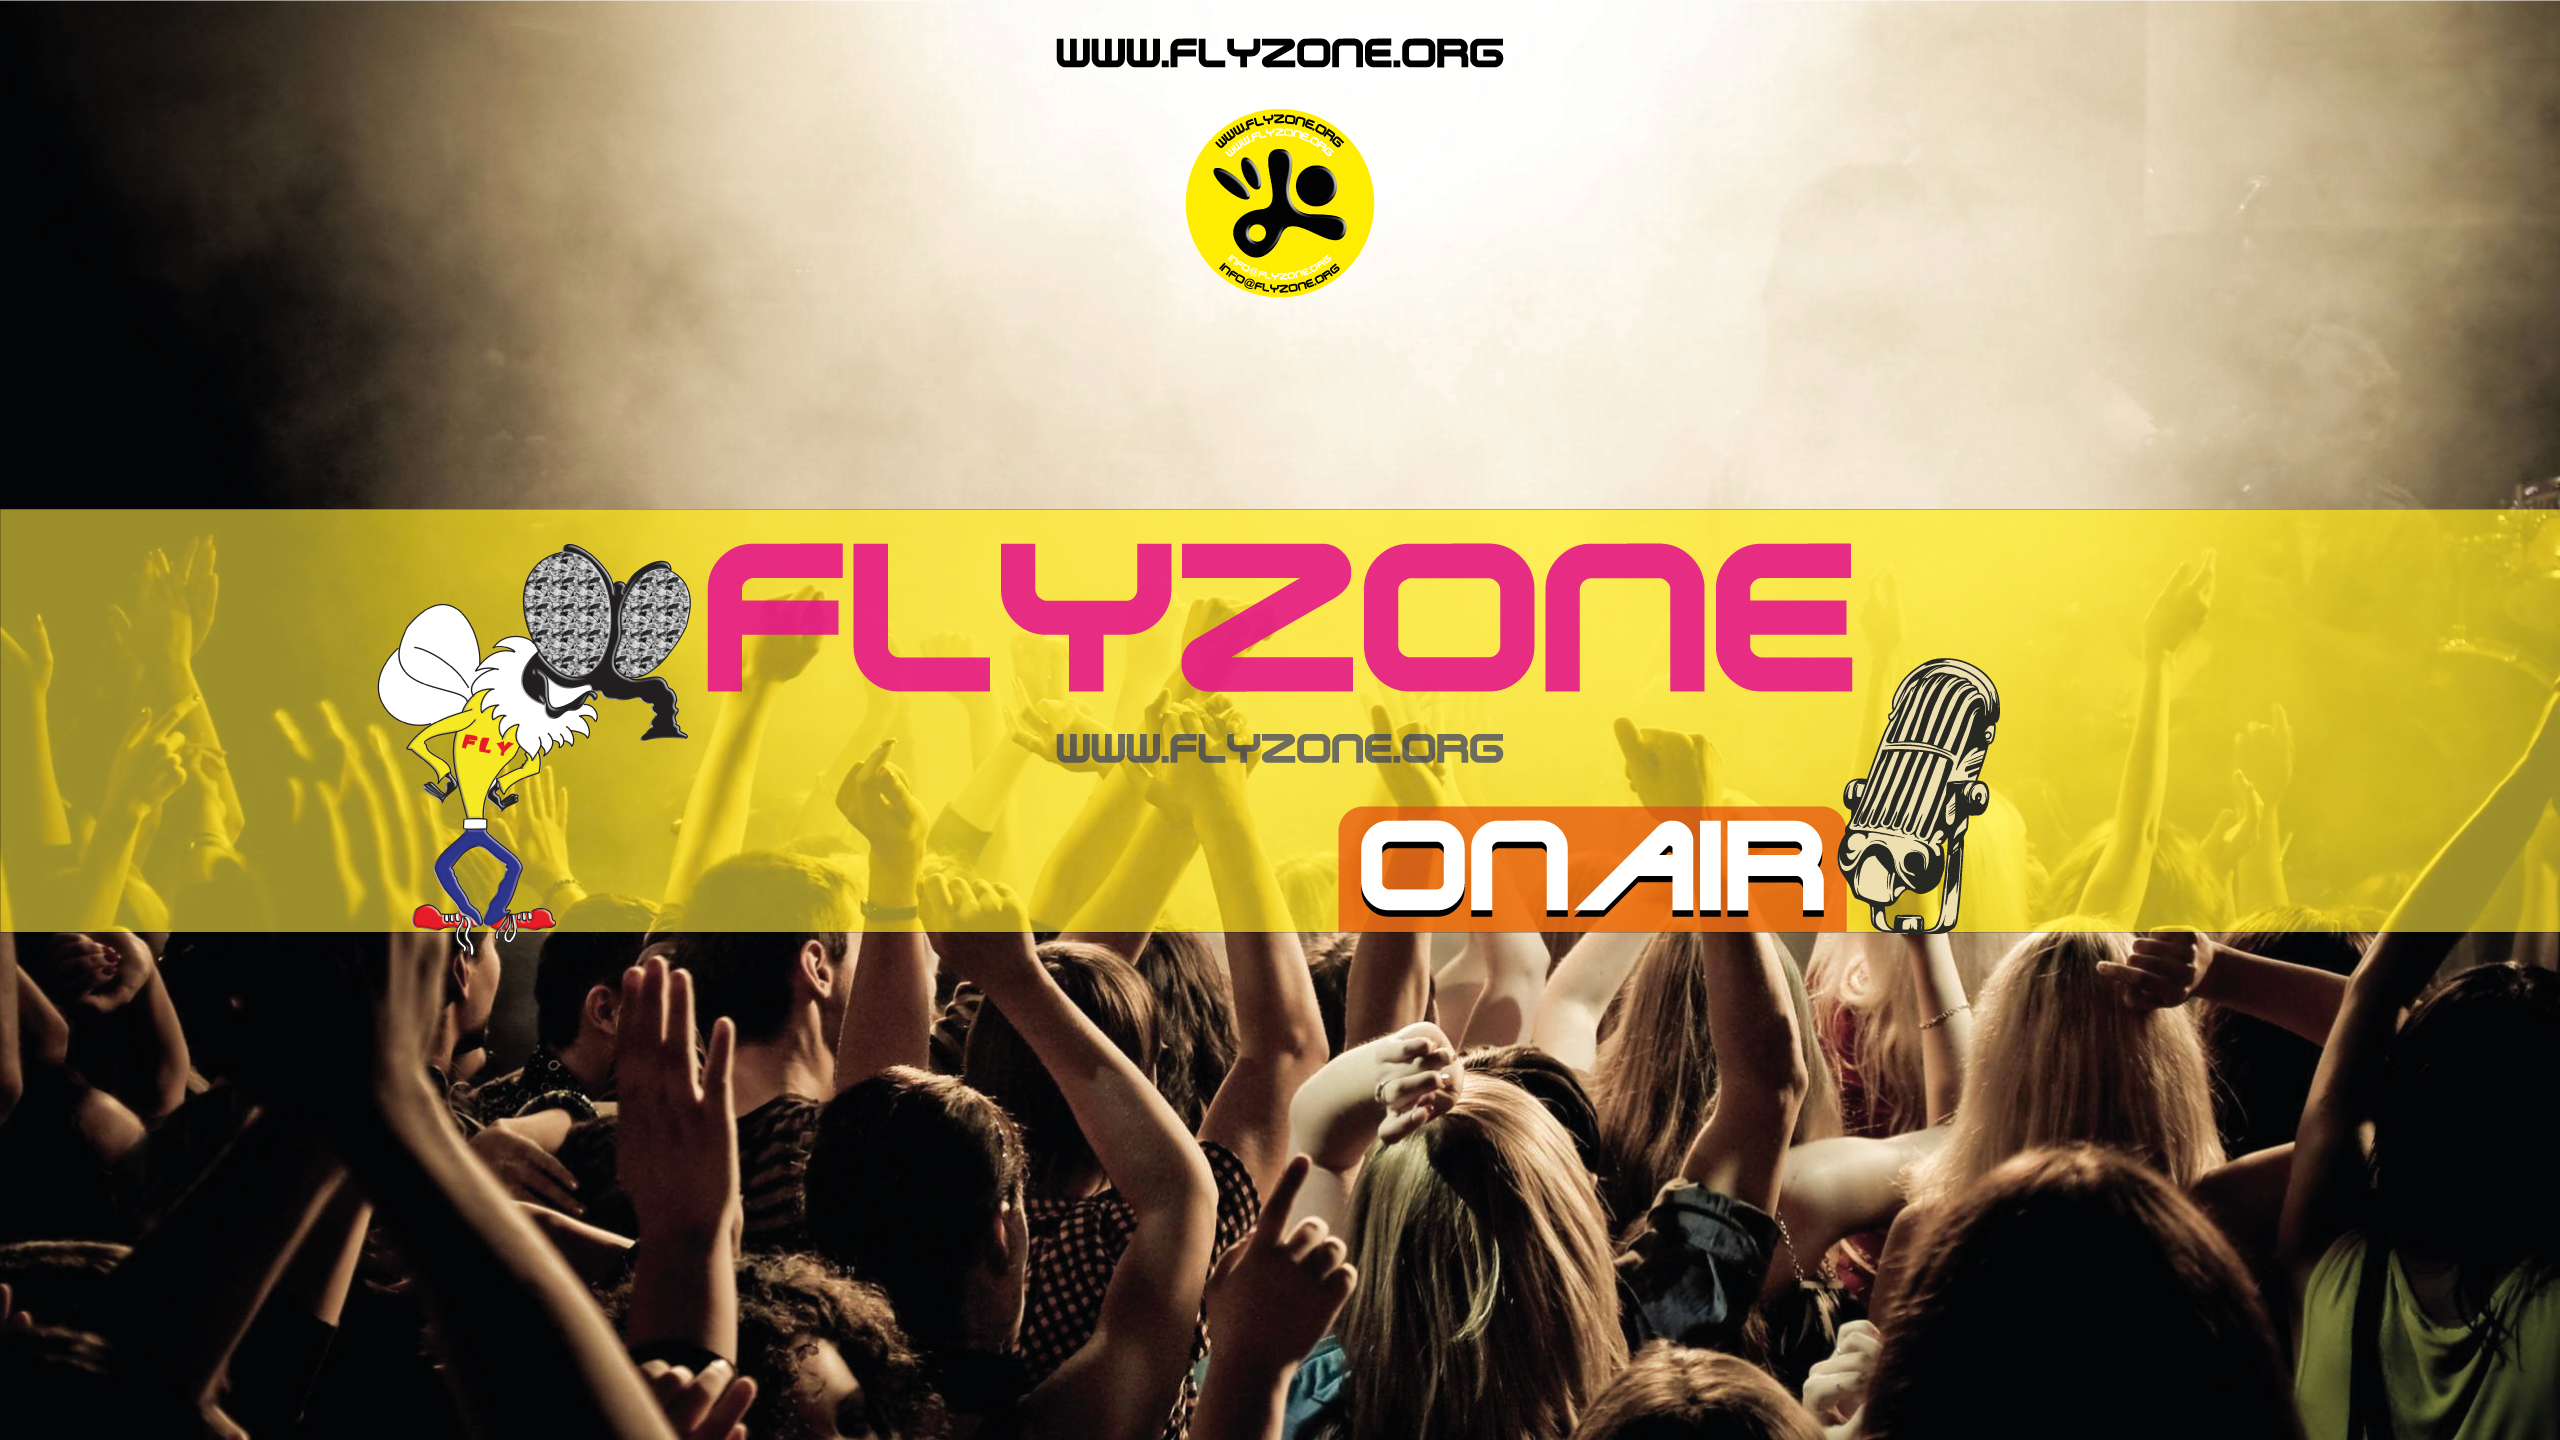 Fly zone on air